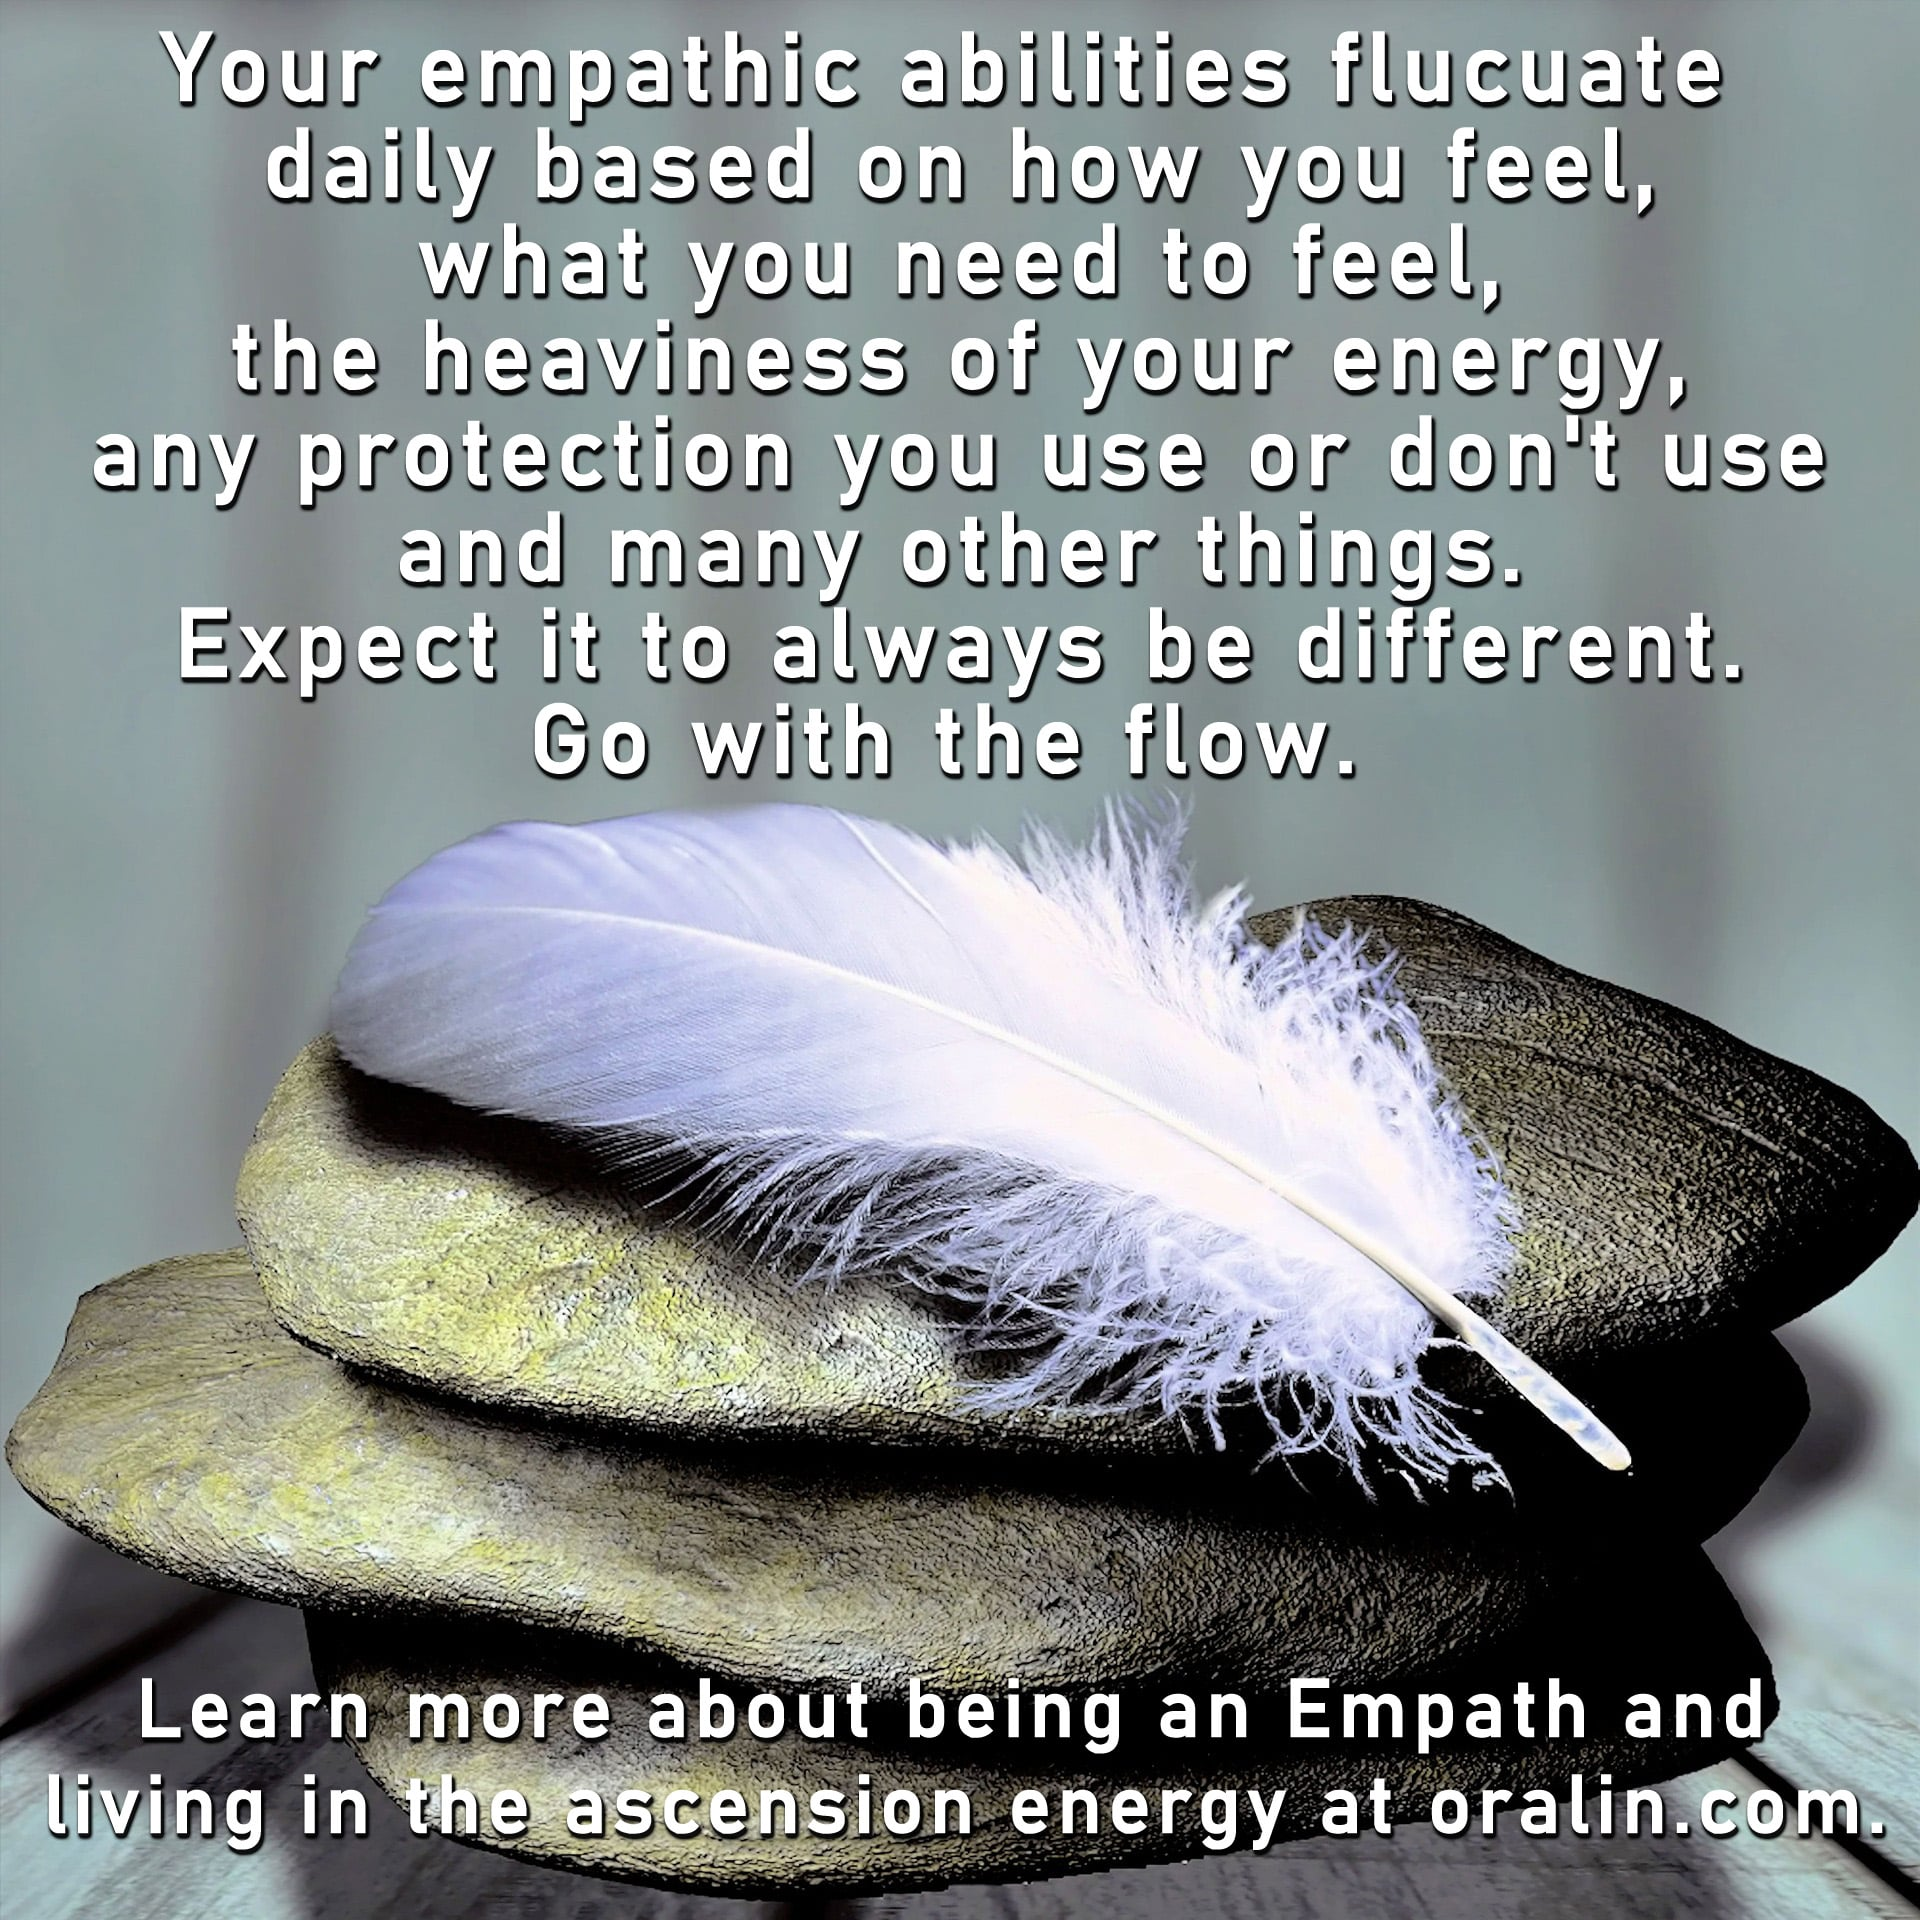 What you need to know about being an Empath